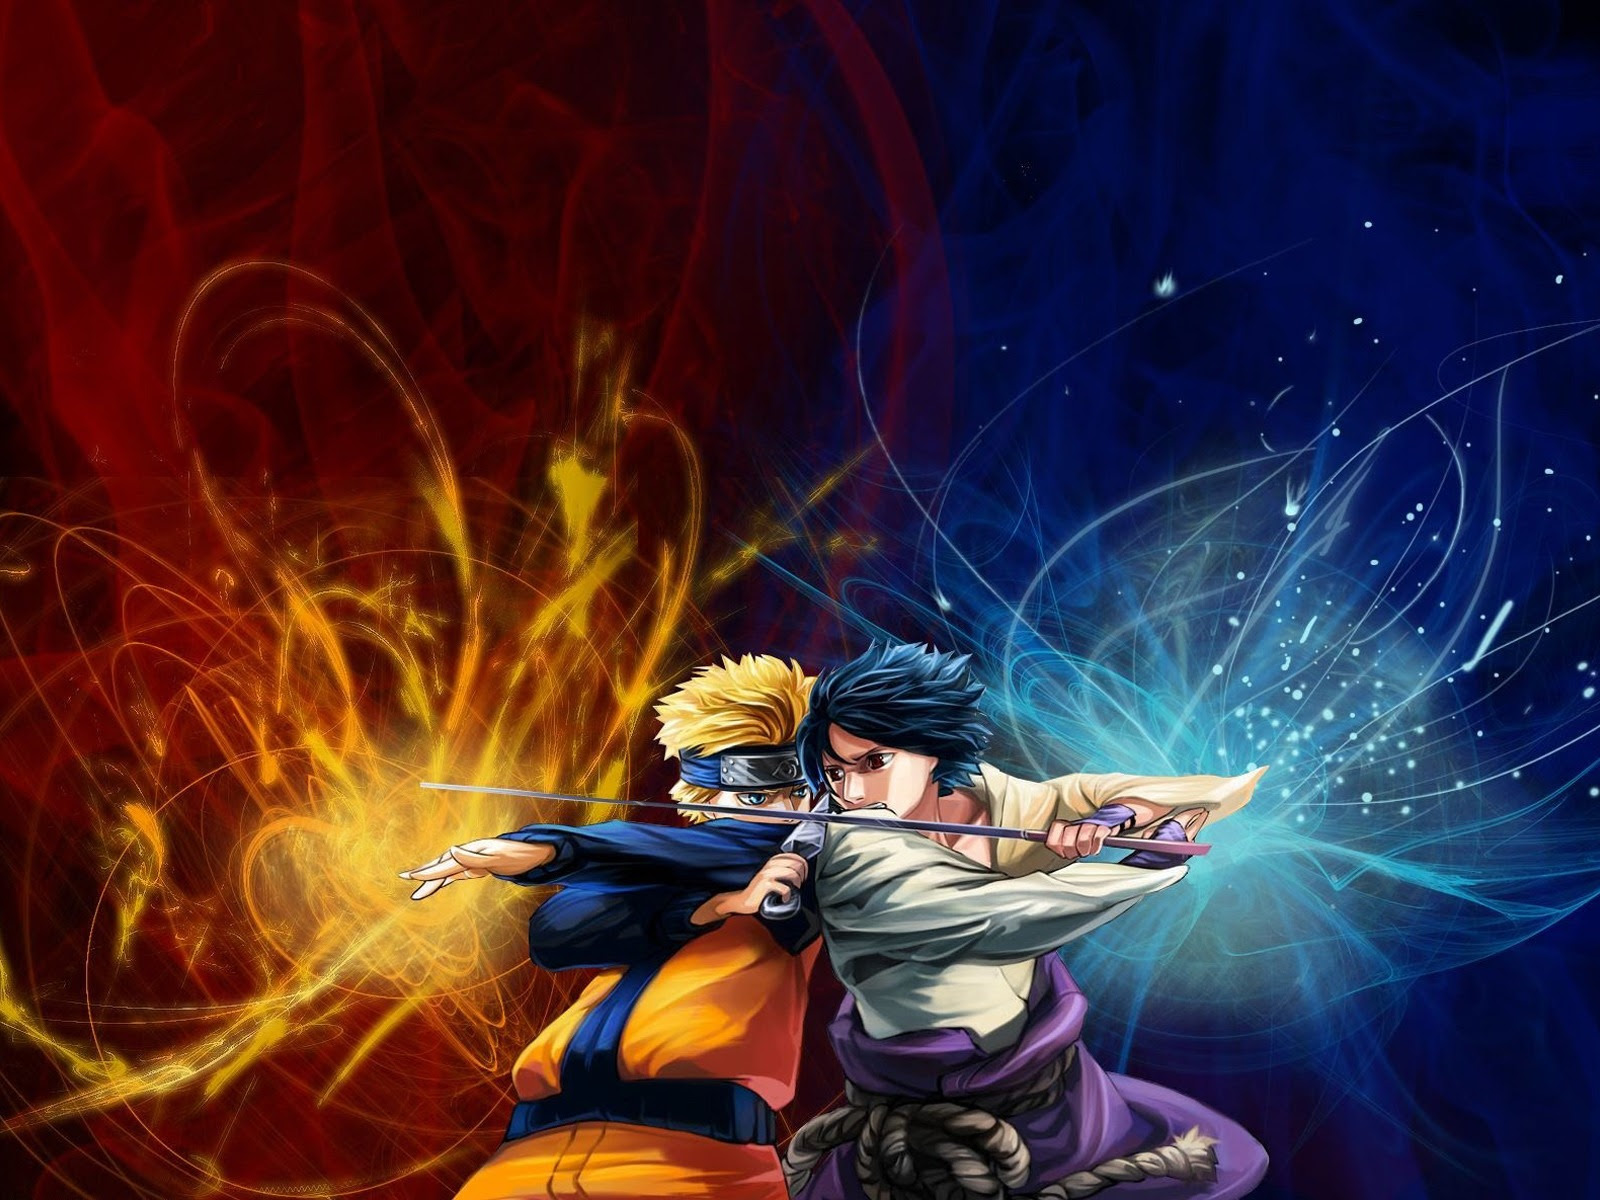 Naruto Vs Sasuke Wallpaper Naruto Anime Animated Wallpapers In Jpg Format For Free Download